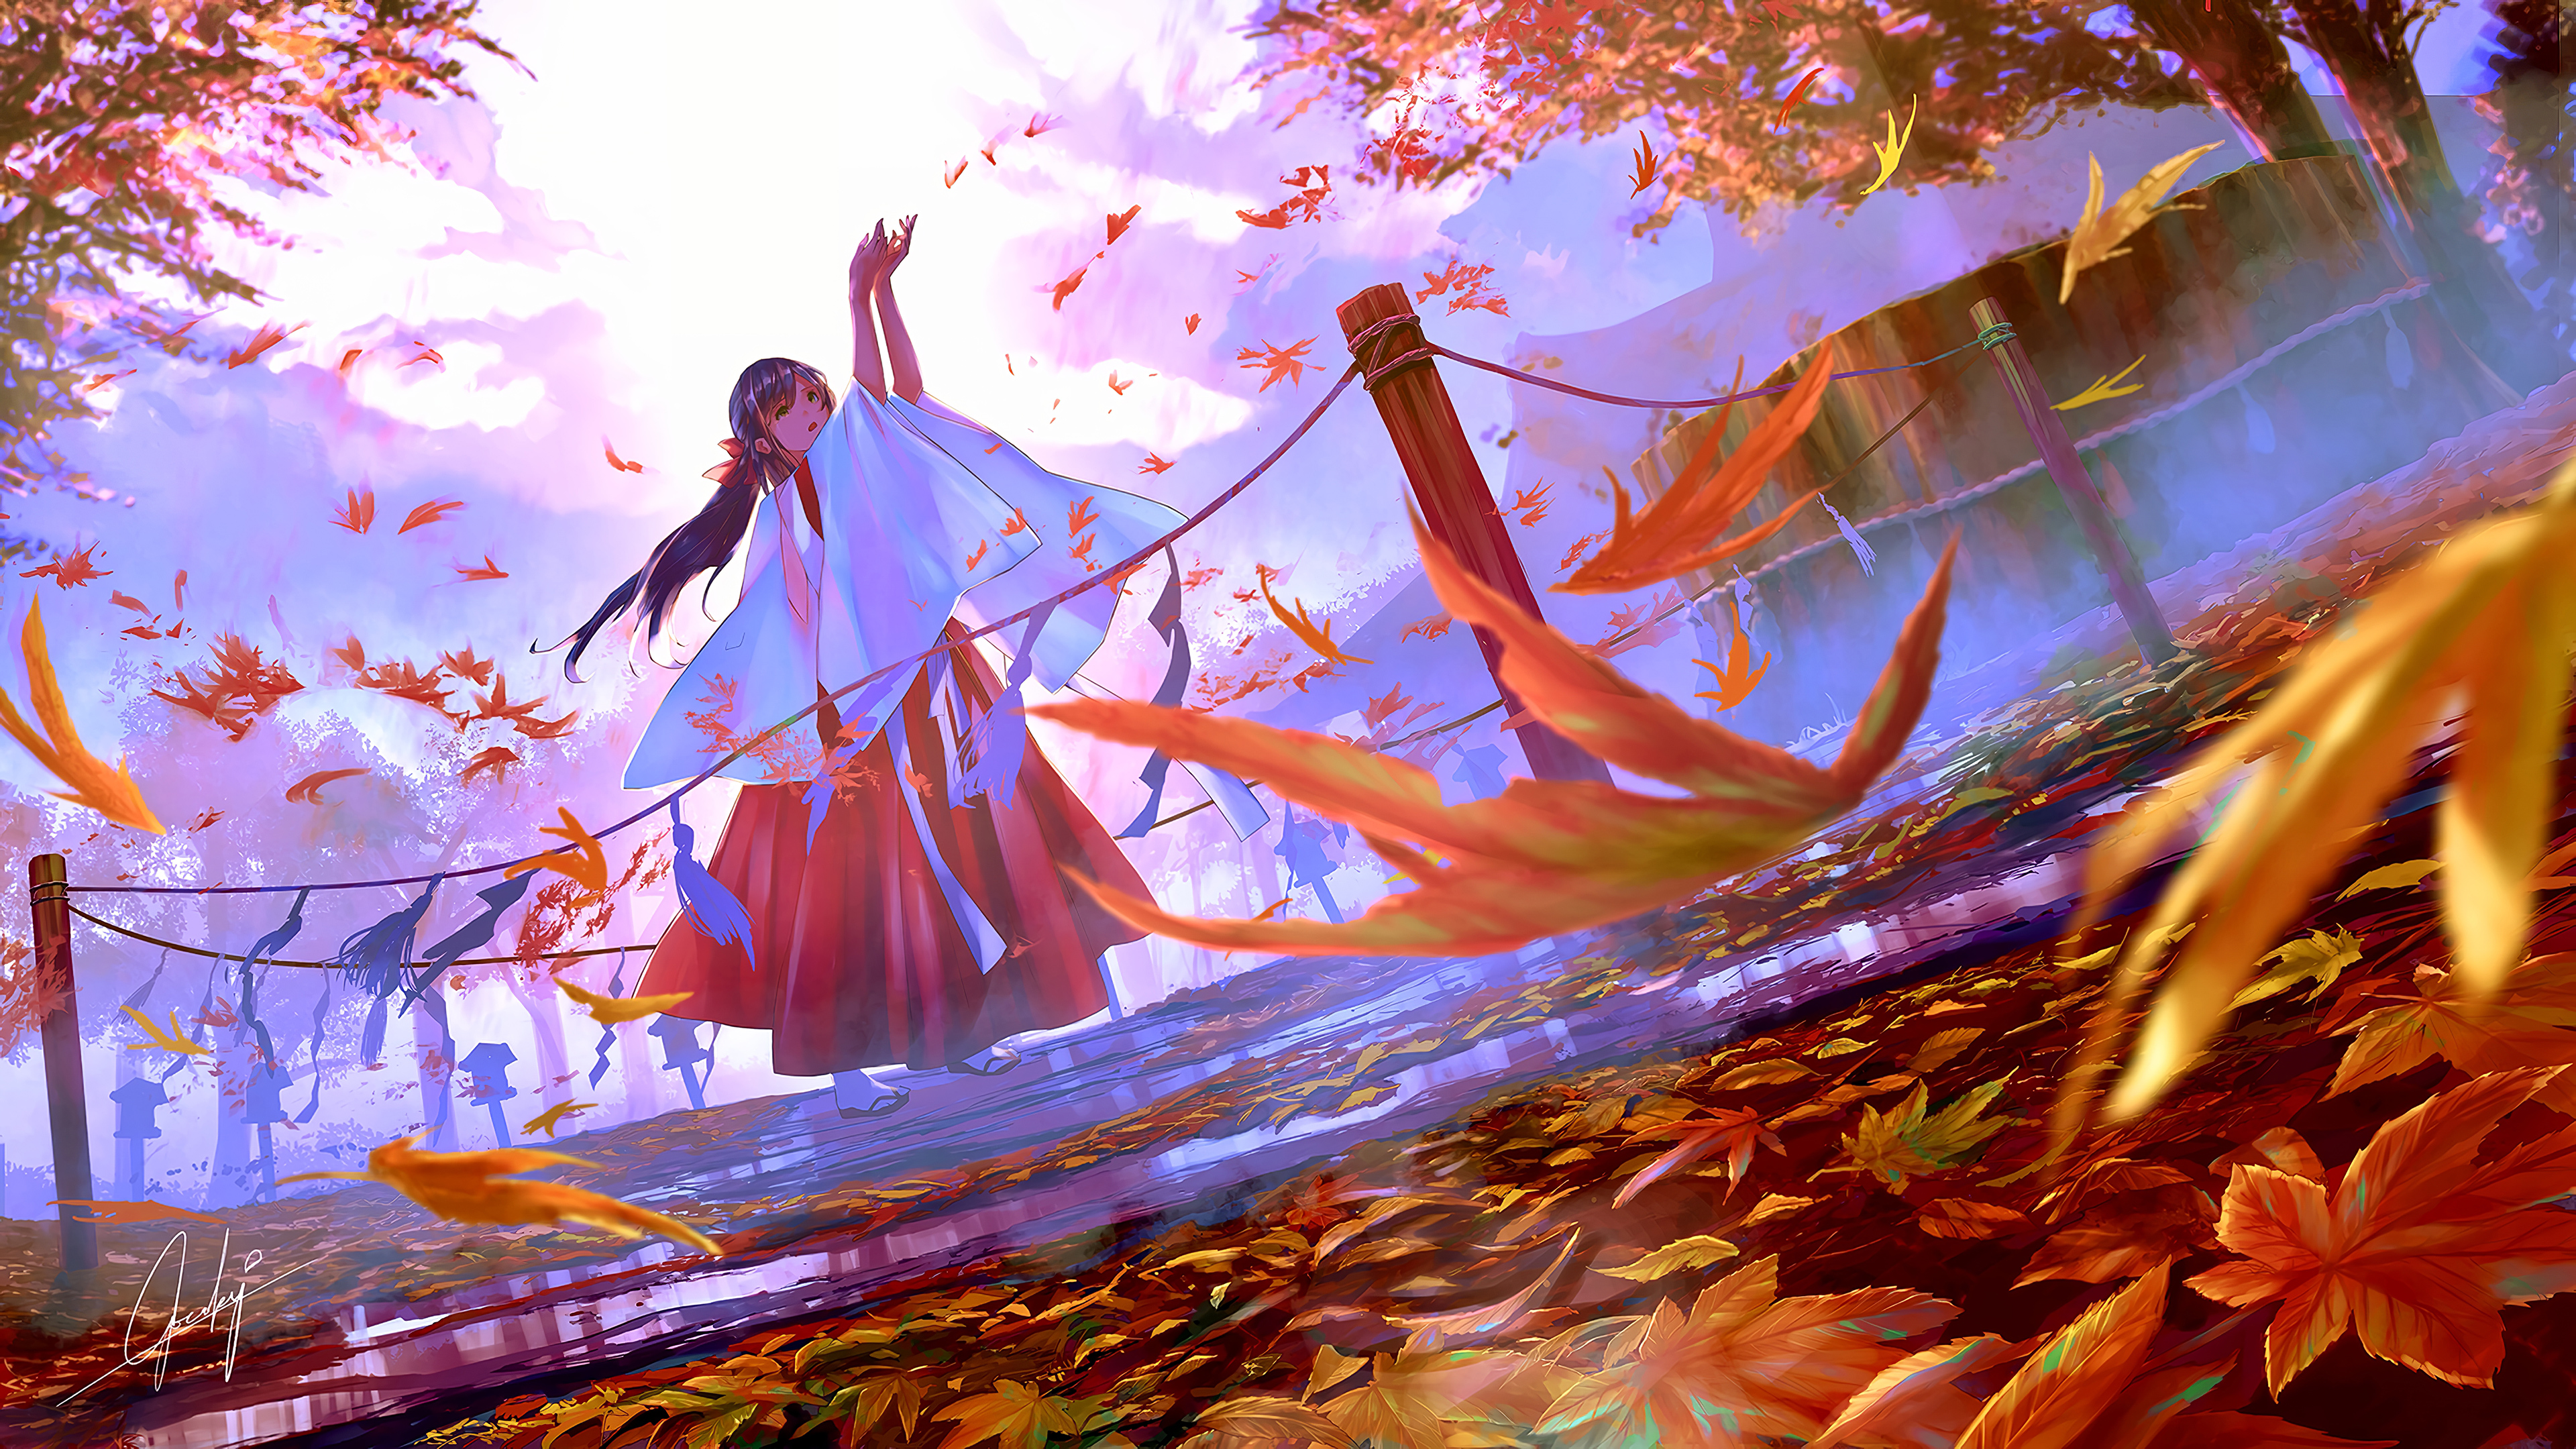 Japan Animation Wallpaper Posted By Ethan Tremblay